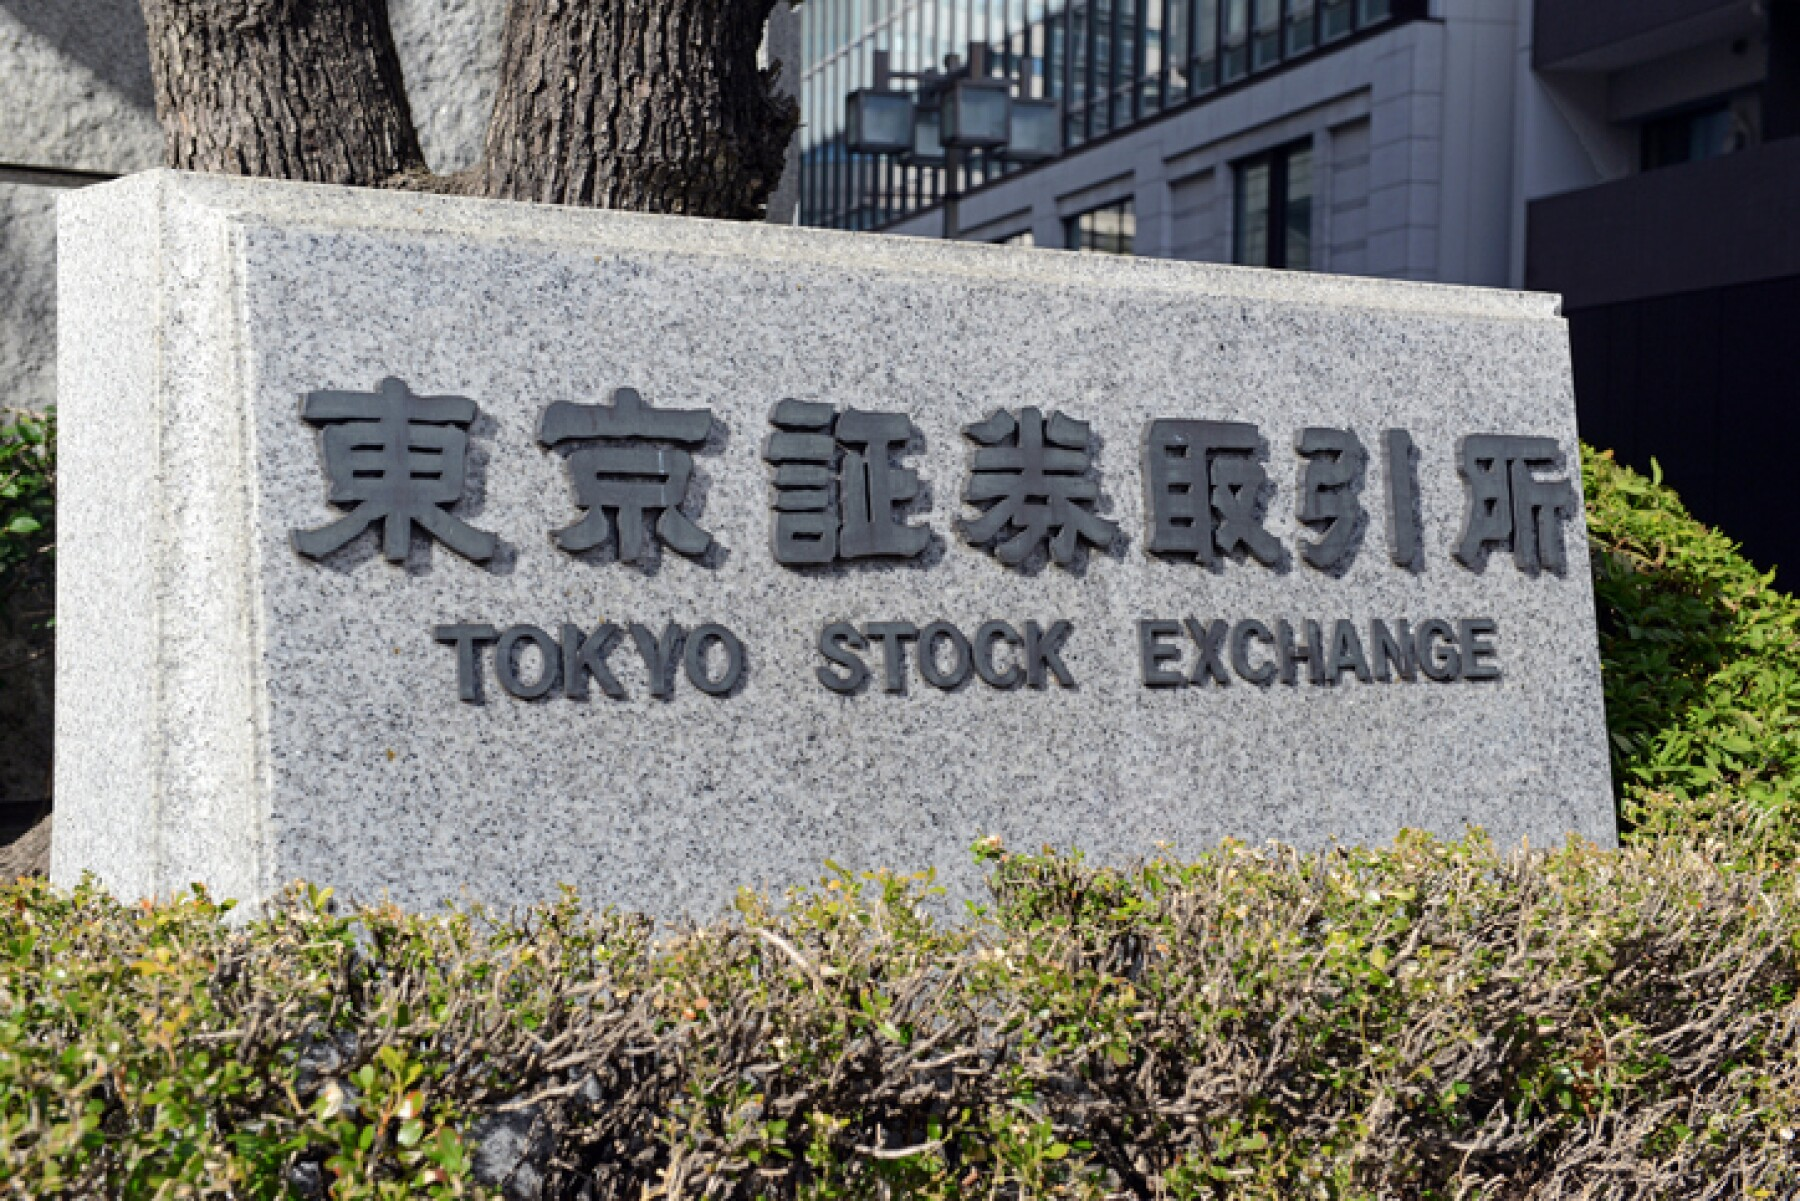 While below its 1989 record, the Nikkei 225 Index for the Tokyo Stock Exchange has been increasing the past nine years evidencing strong equity market confidence in Japan